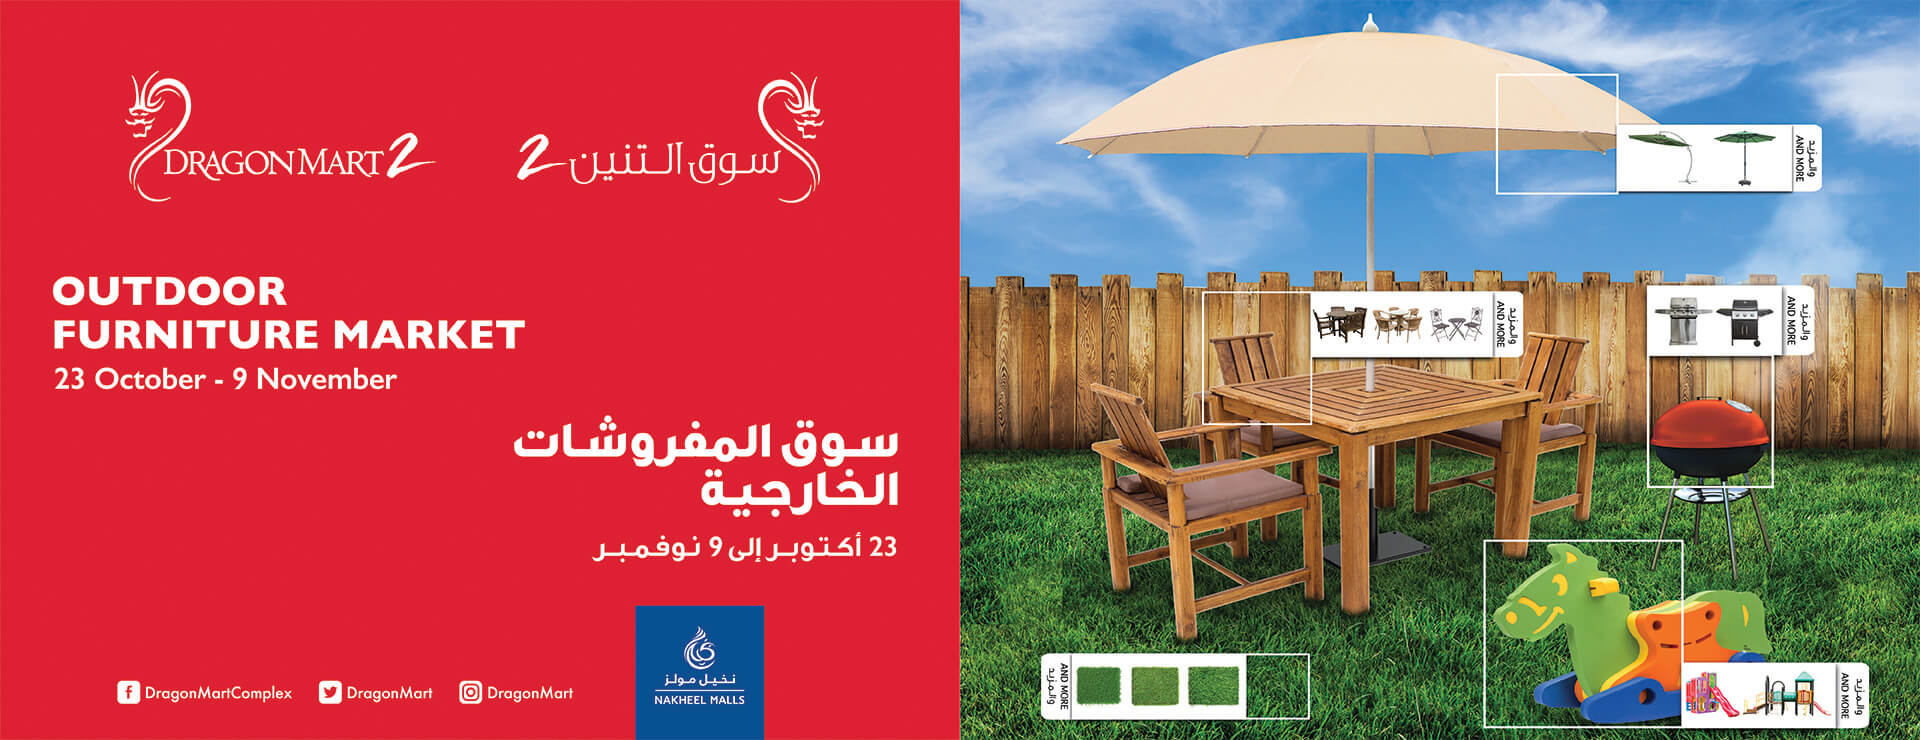 Outdoor Furniture Market Dubai